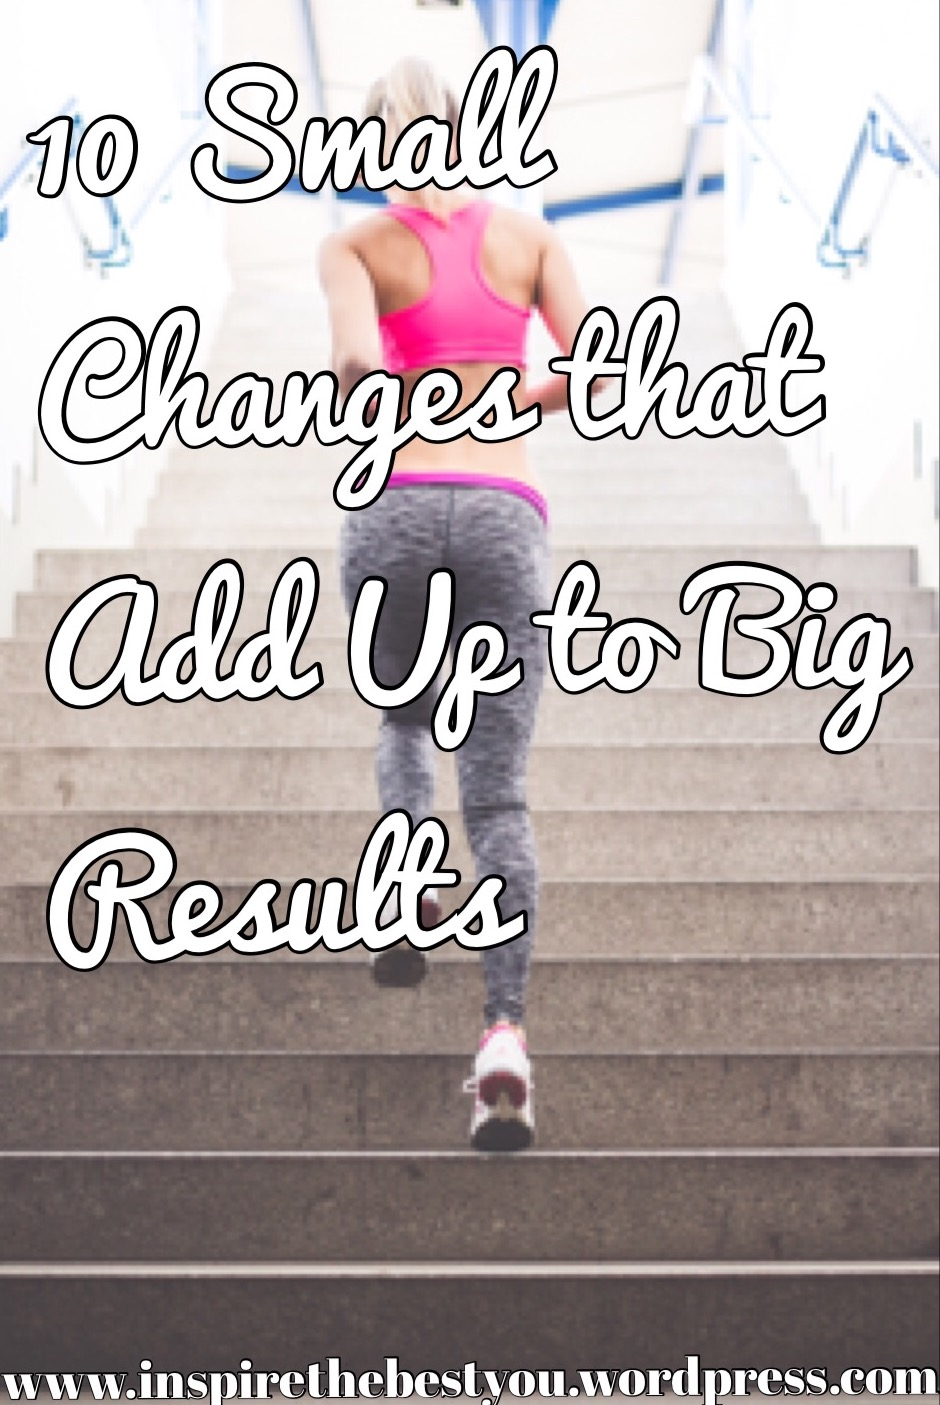 10 Small Changes that Add Up to Big Results